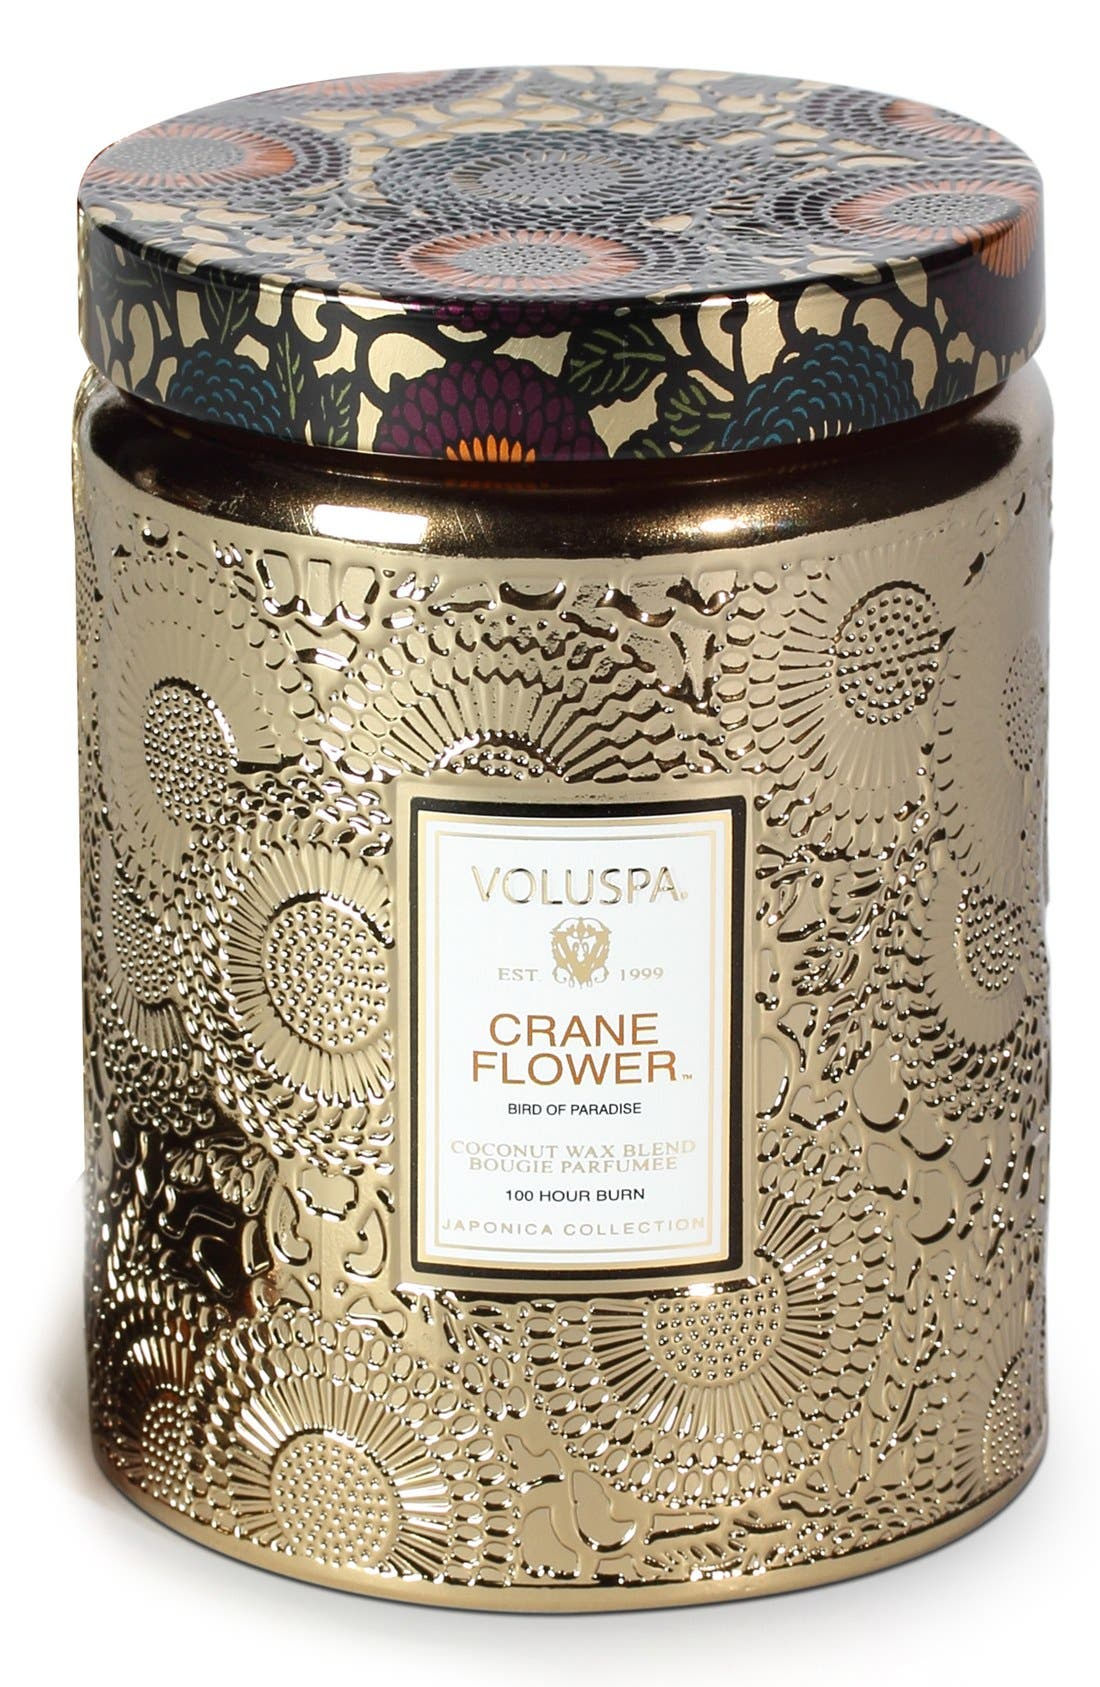 Voluspa Japonica - Crane Flower Large Embossed Jar Candle